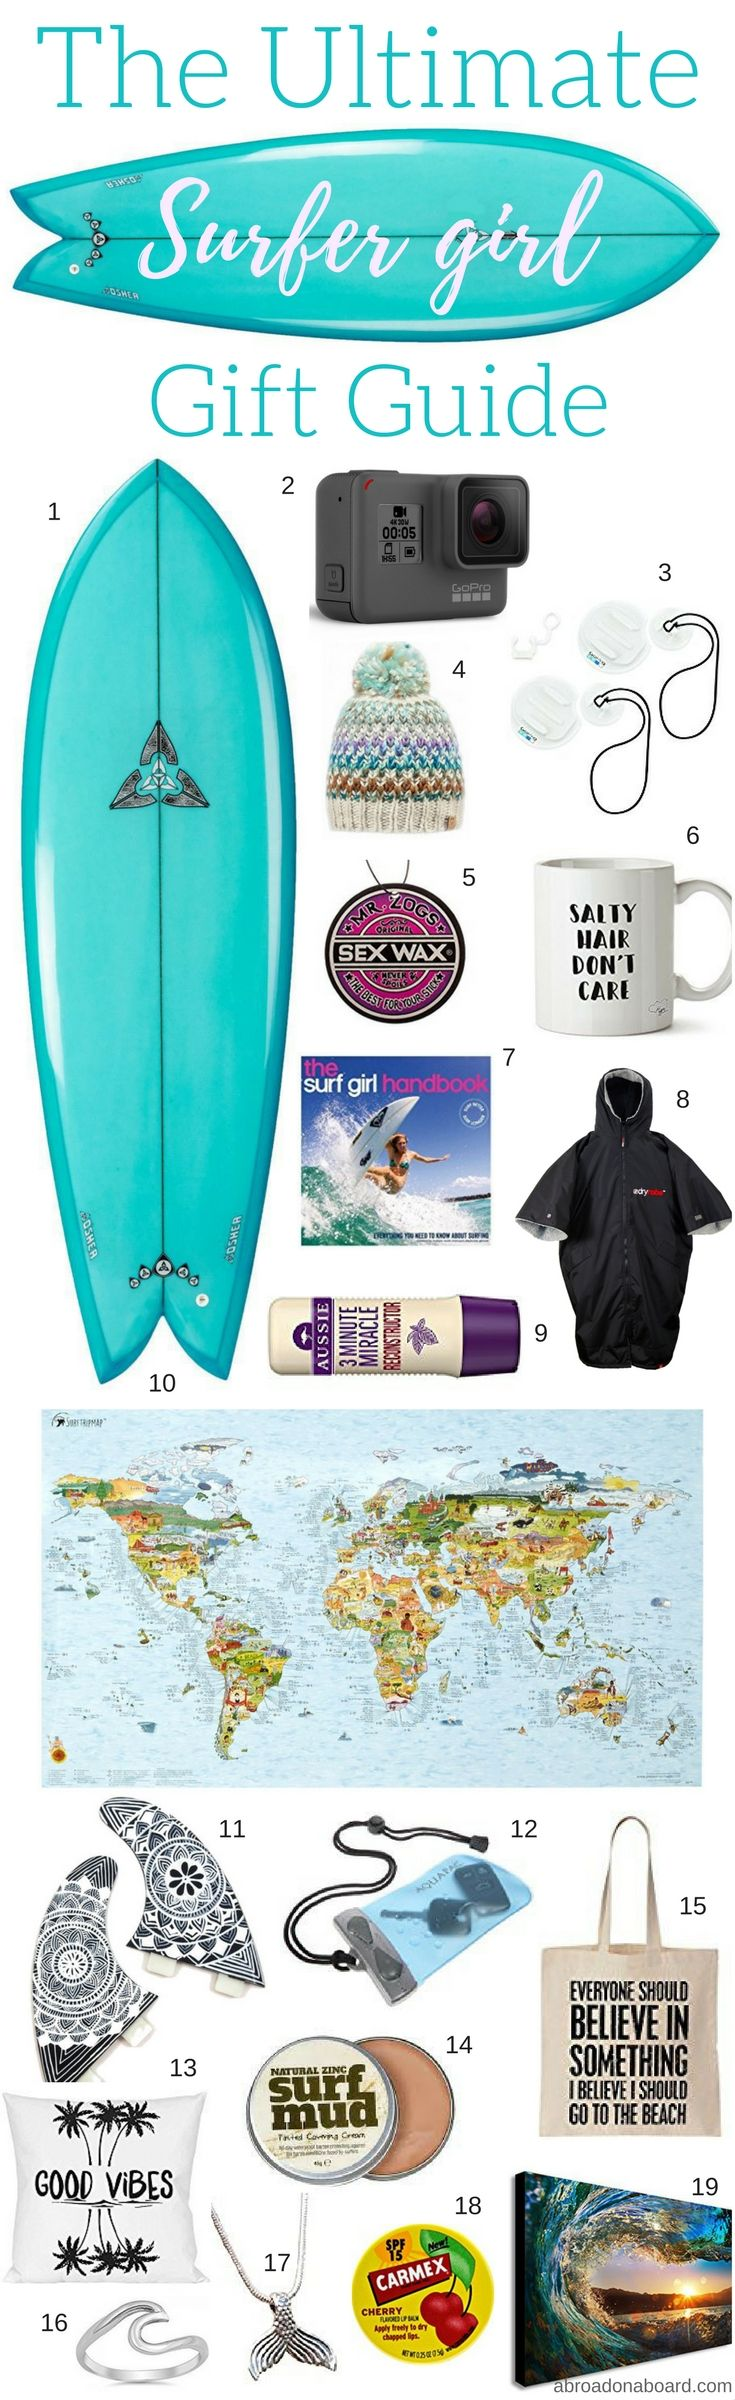 With Christmas just around the corner, don't panic if you have no idea what to buy your favourite surfer girl. Choose something from this list of thoughtful, surf inspired gems and you will have a gift to make the eyes of any mermaid sparkle. From stocking fillers to outright splurges, whatever your budget, this guide has you covered.